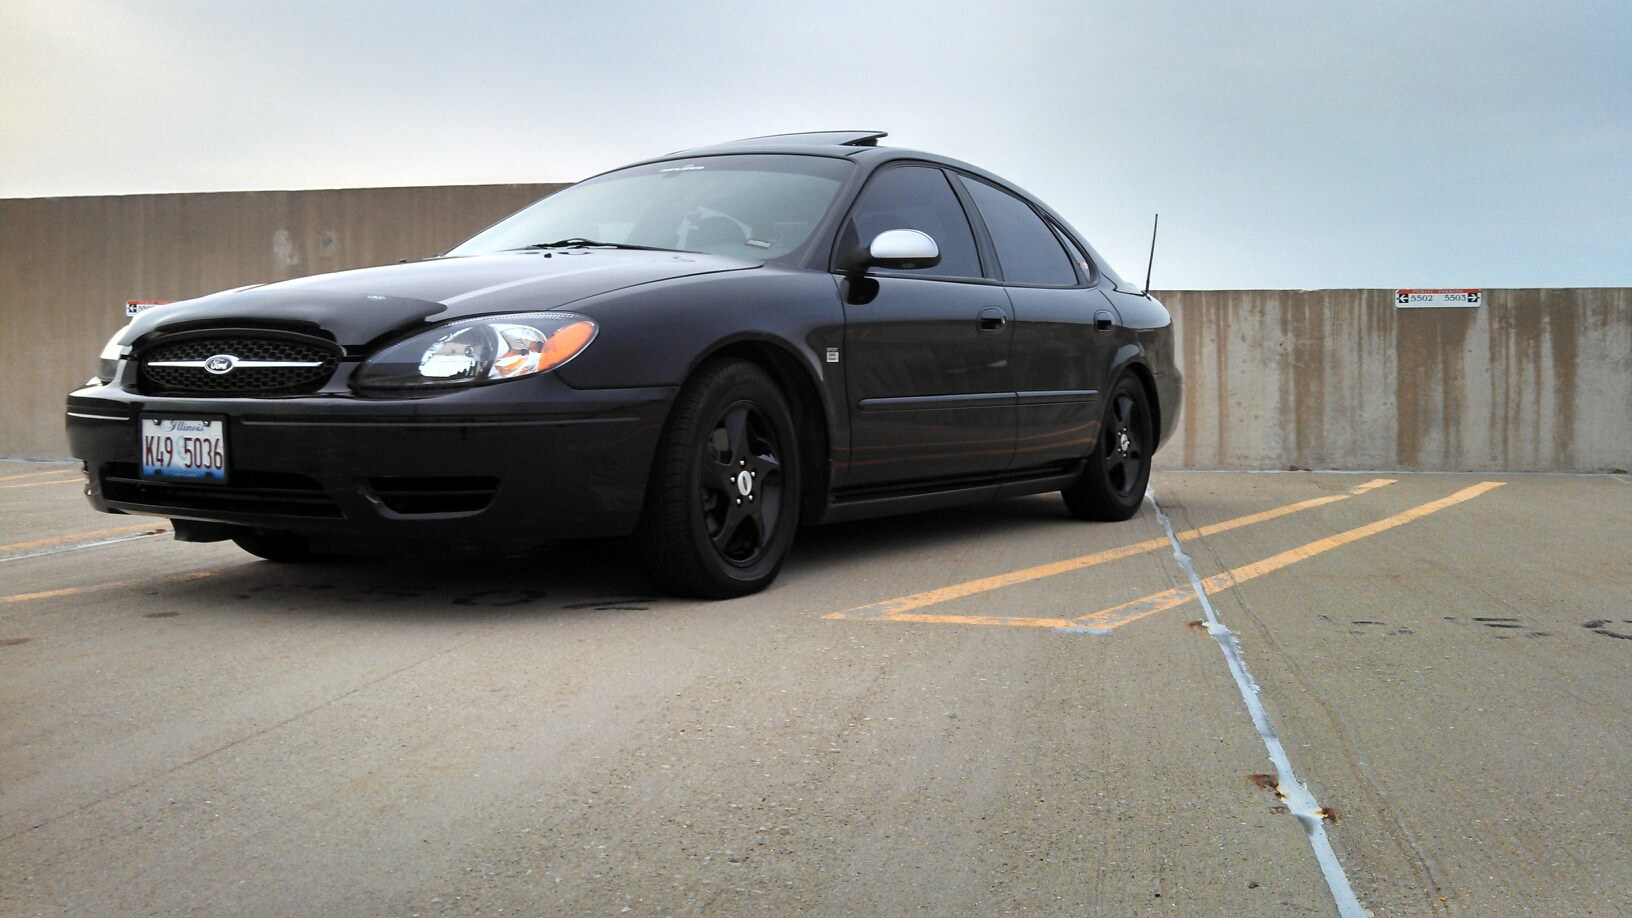 D Blackout S Ford Taurus Ses O